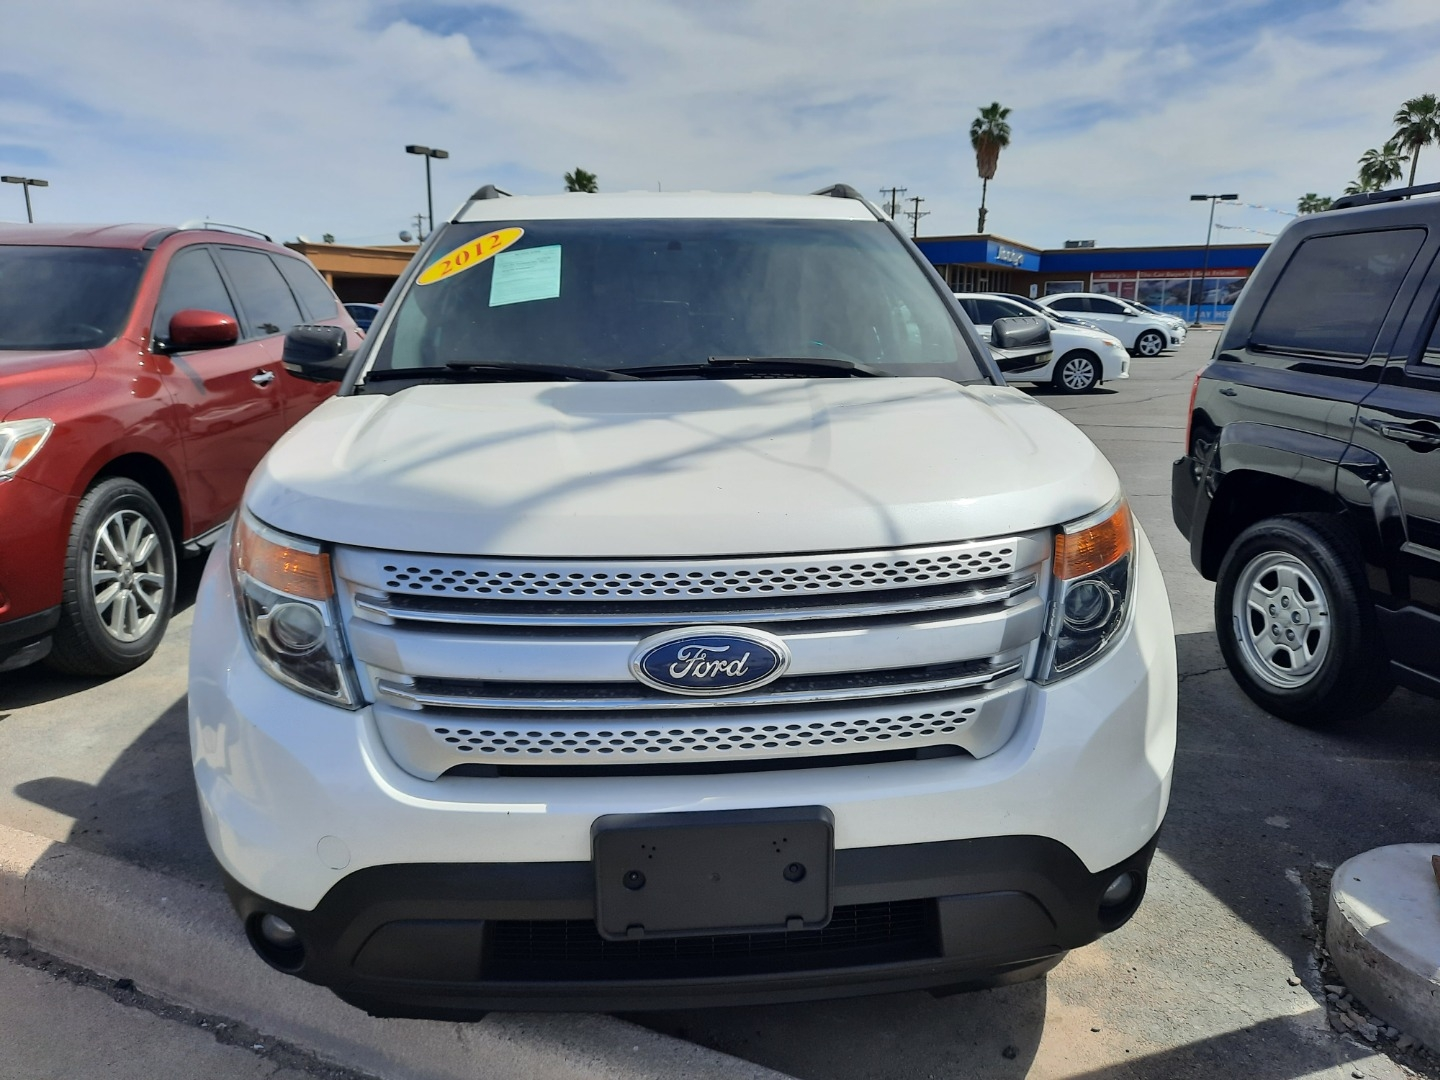 Pre-Owned 2012 Ford EXPLORER 4 DOOR WAGON